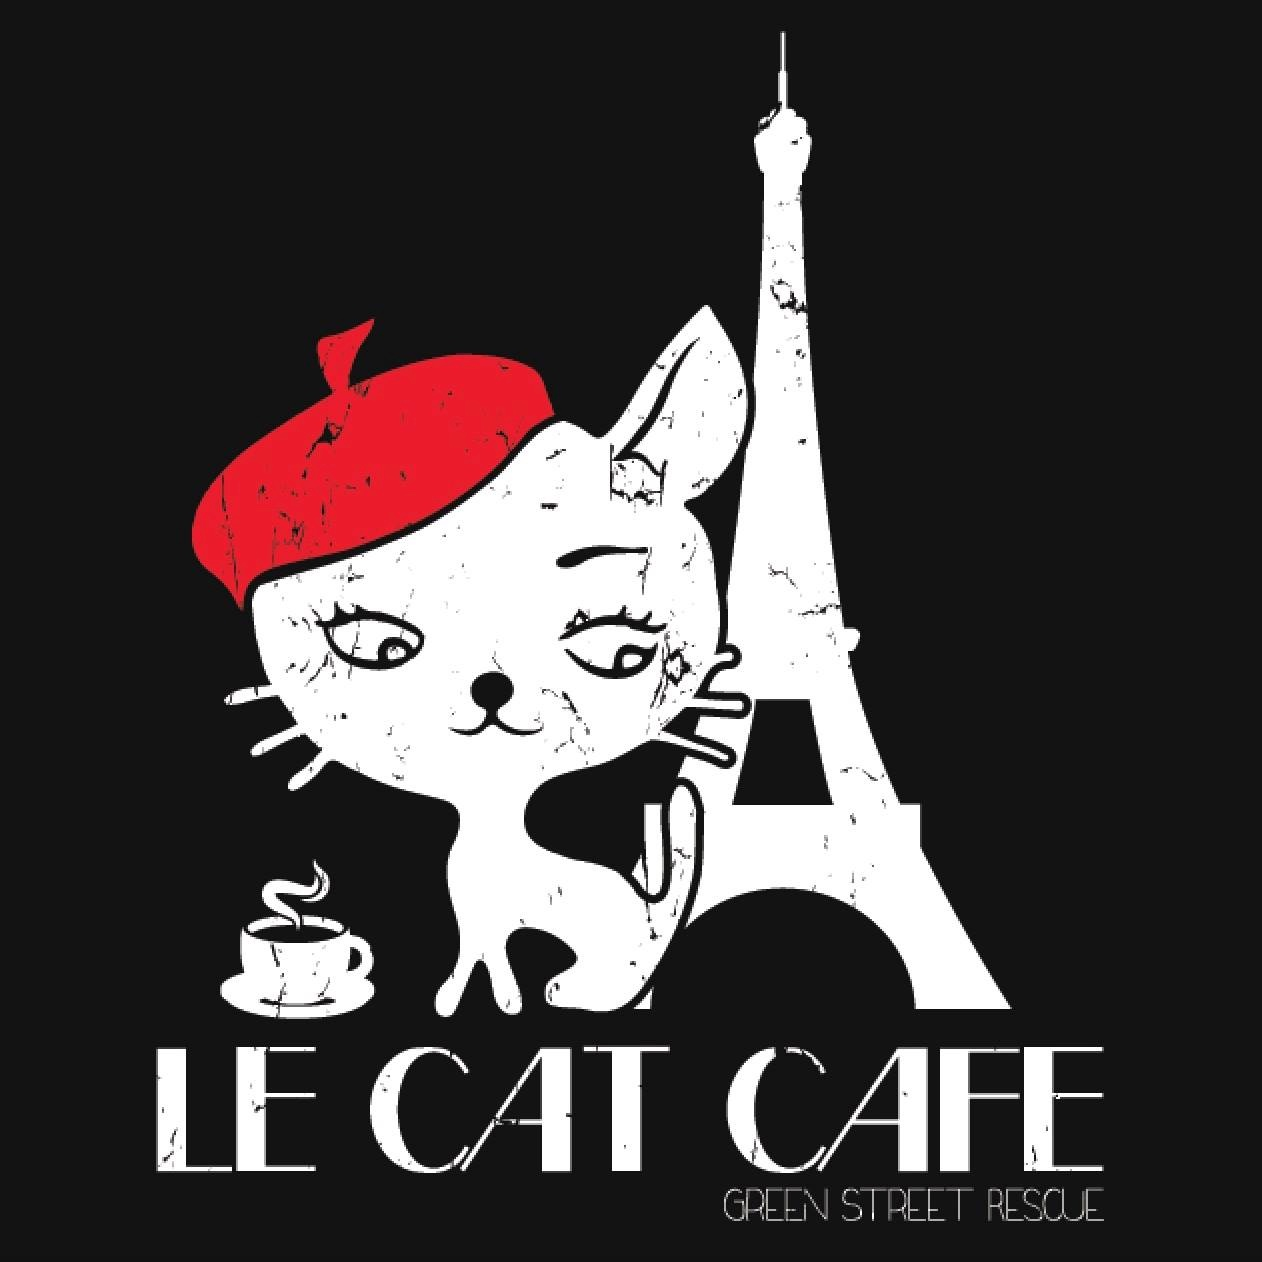 Le cat cafe logo